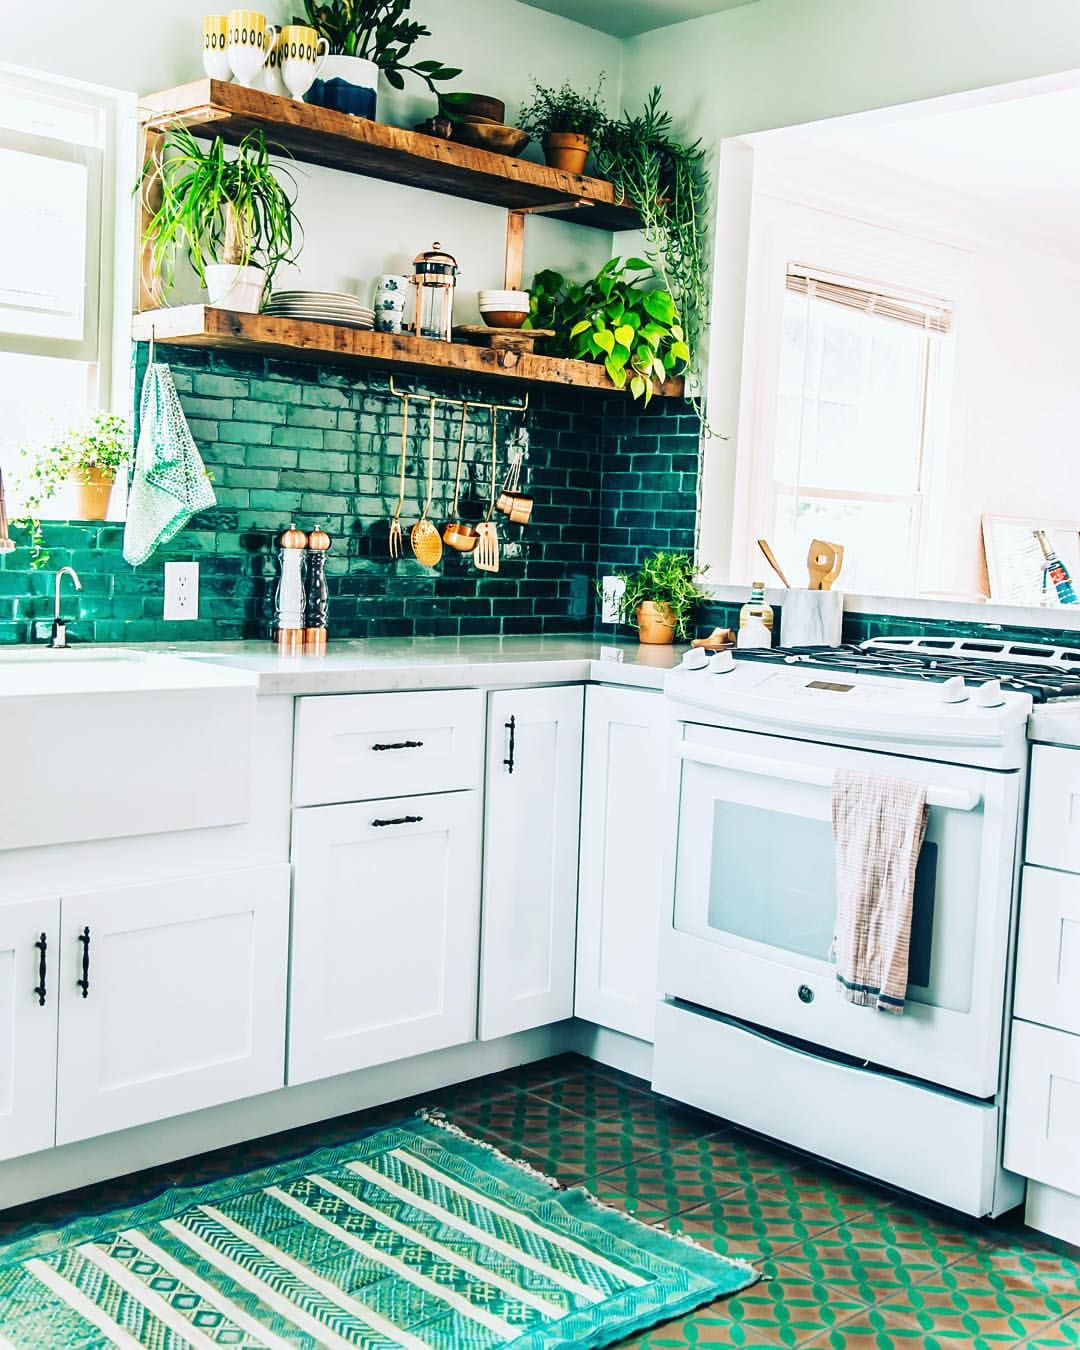 Ideas for kitchen decor   Stunning Picture for Choosing the Perfect Kitchen Rugs  Kitchen